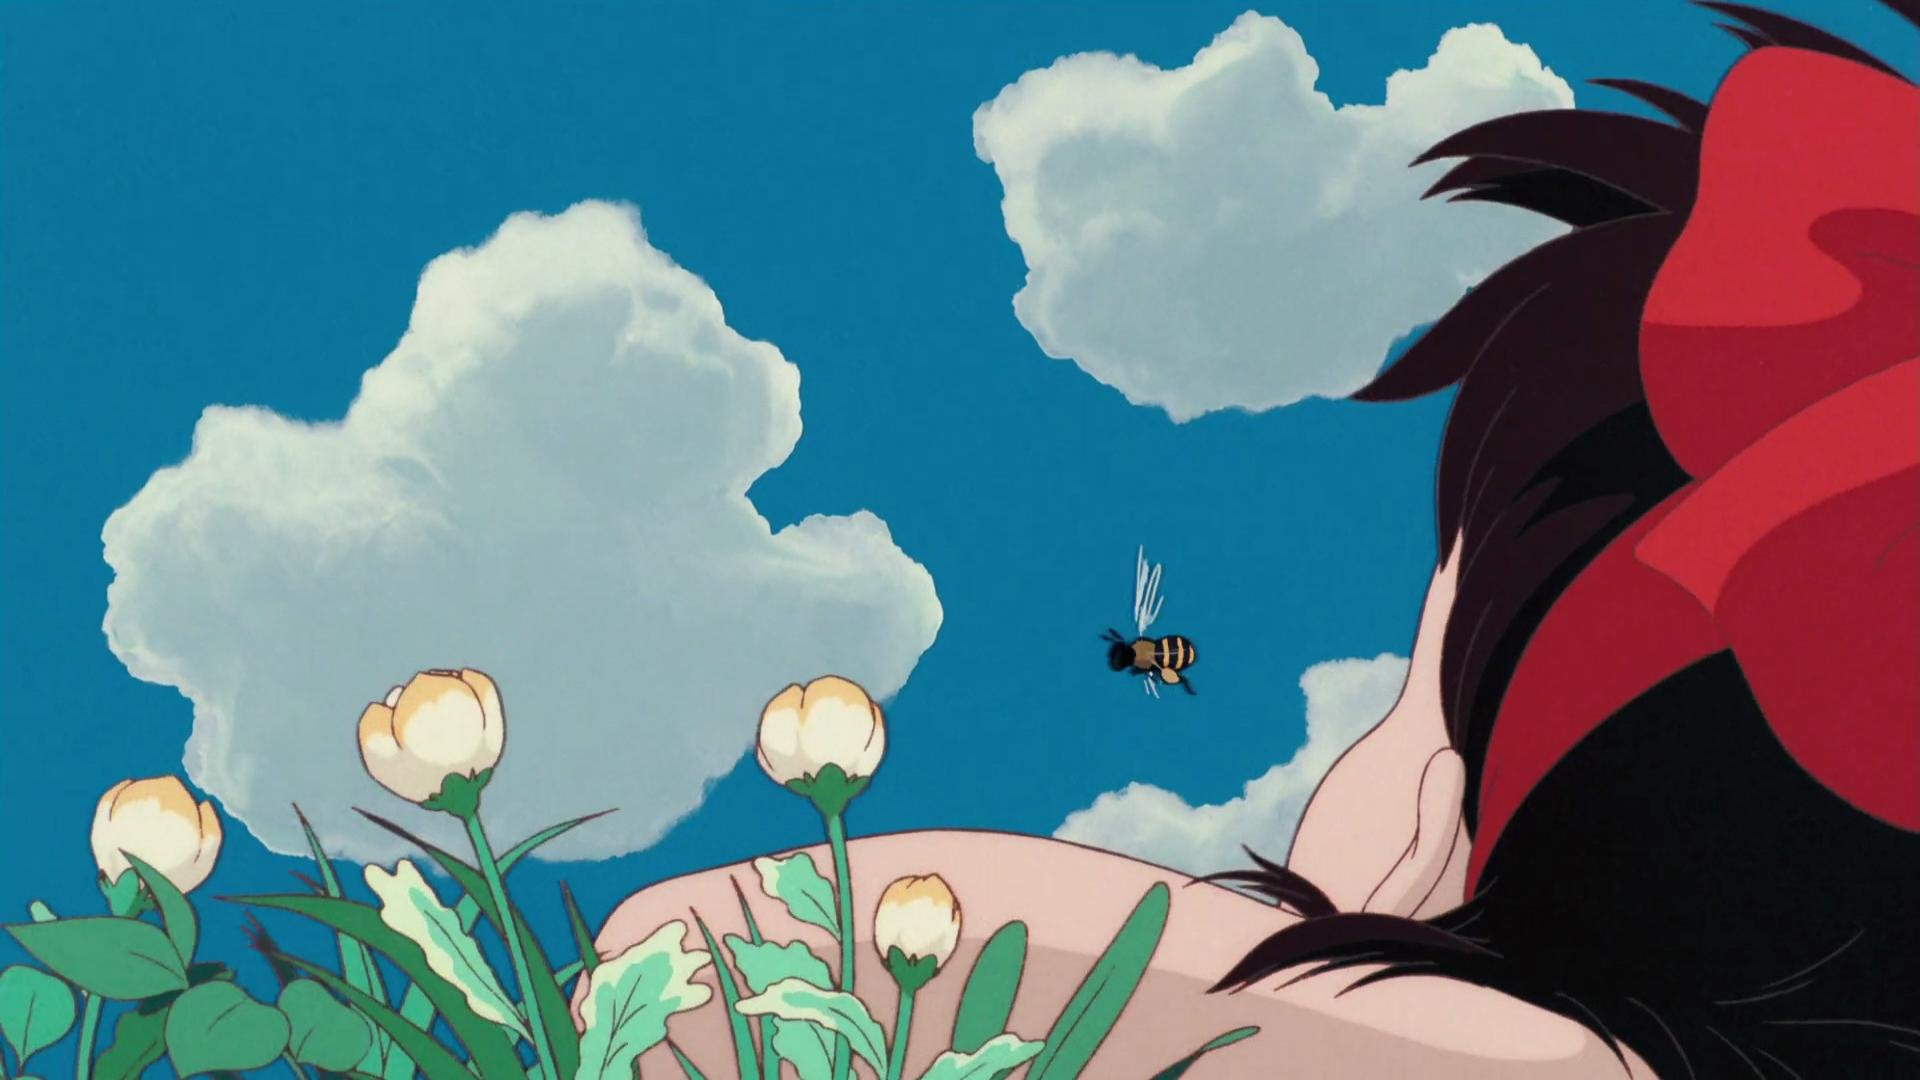 Free Kiki S Delivery Service High Quality Wallpaper Id 360368 For